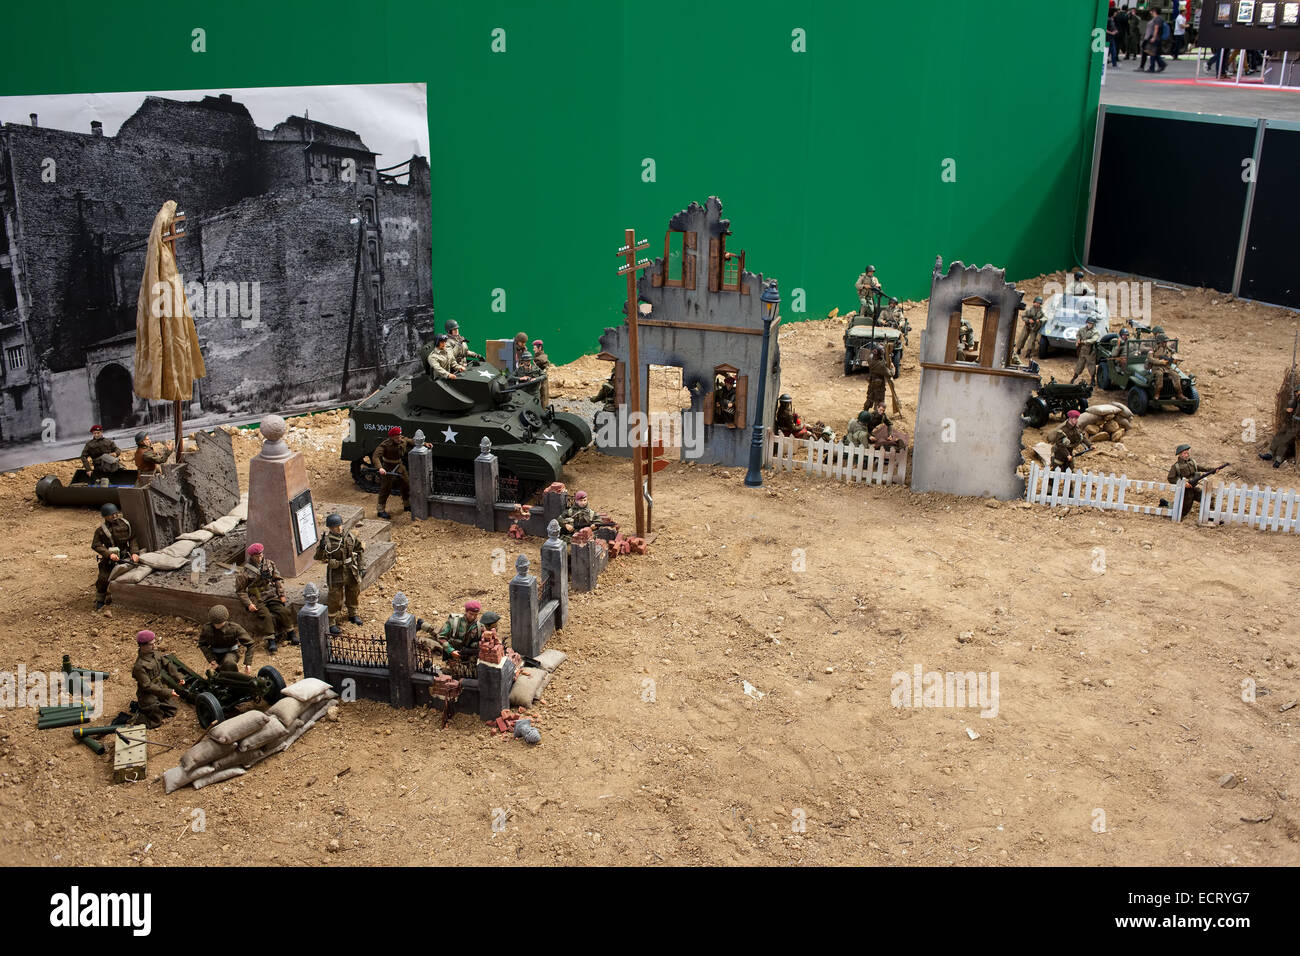 Small scale army models at 32 International Barcelona Comic Con - exhibition on the War in Catalonia, Spain. - Stock Image